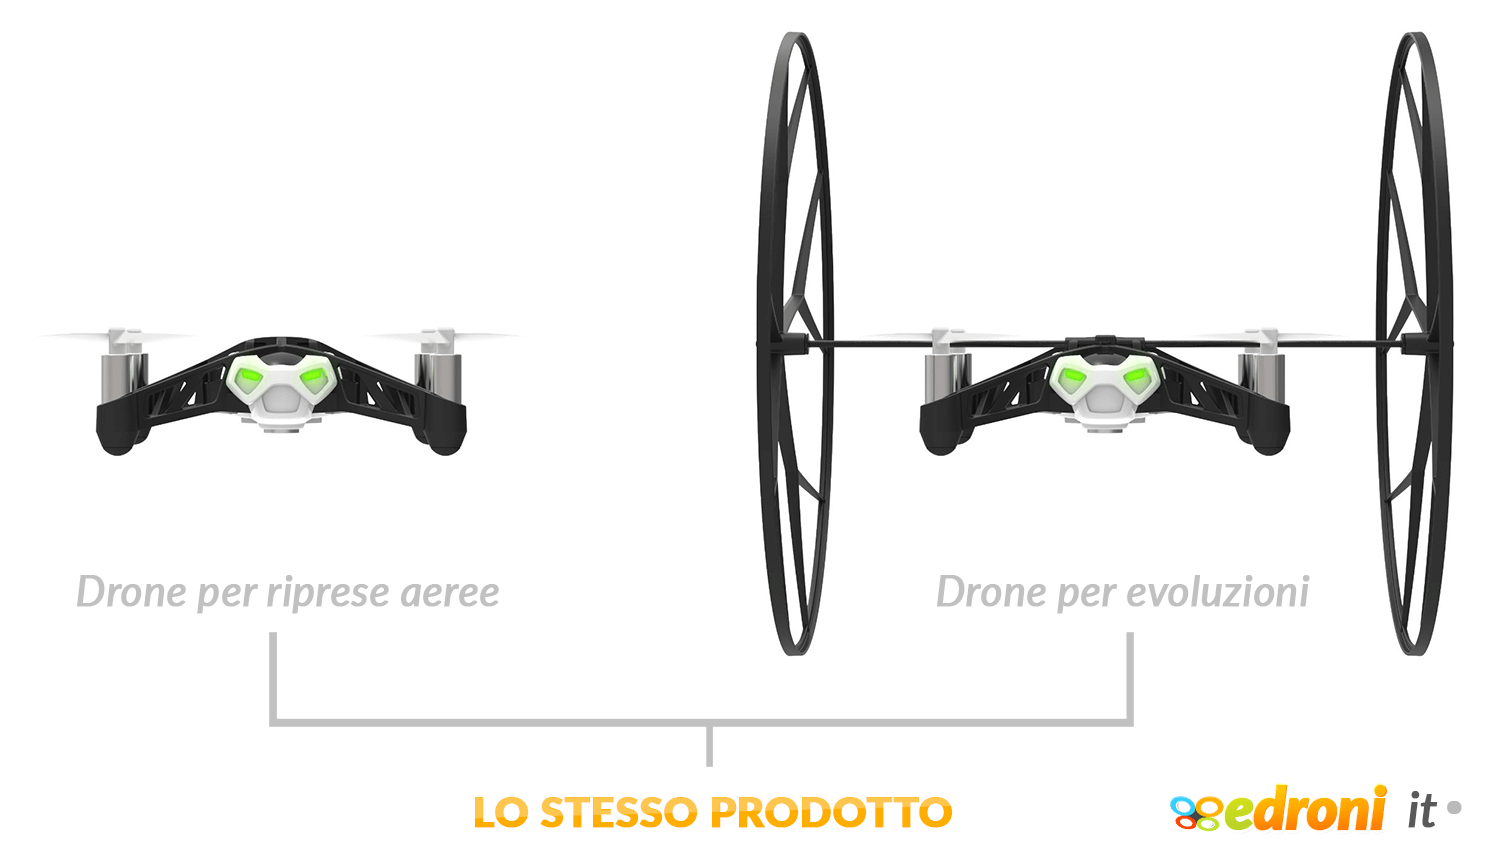 Drone Parrot Minidrone Rolling Spider